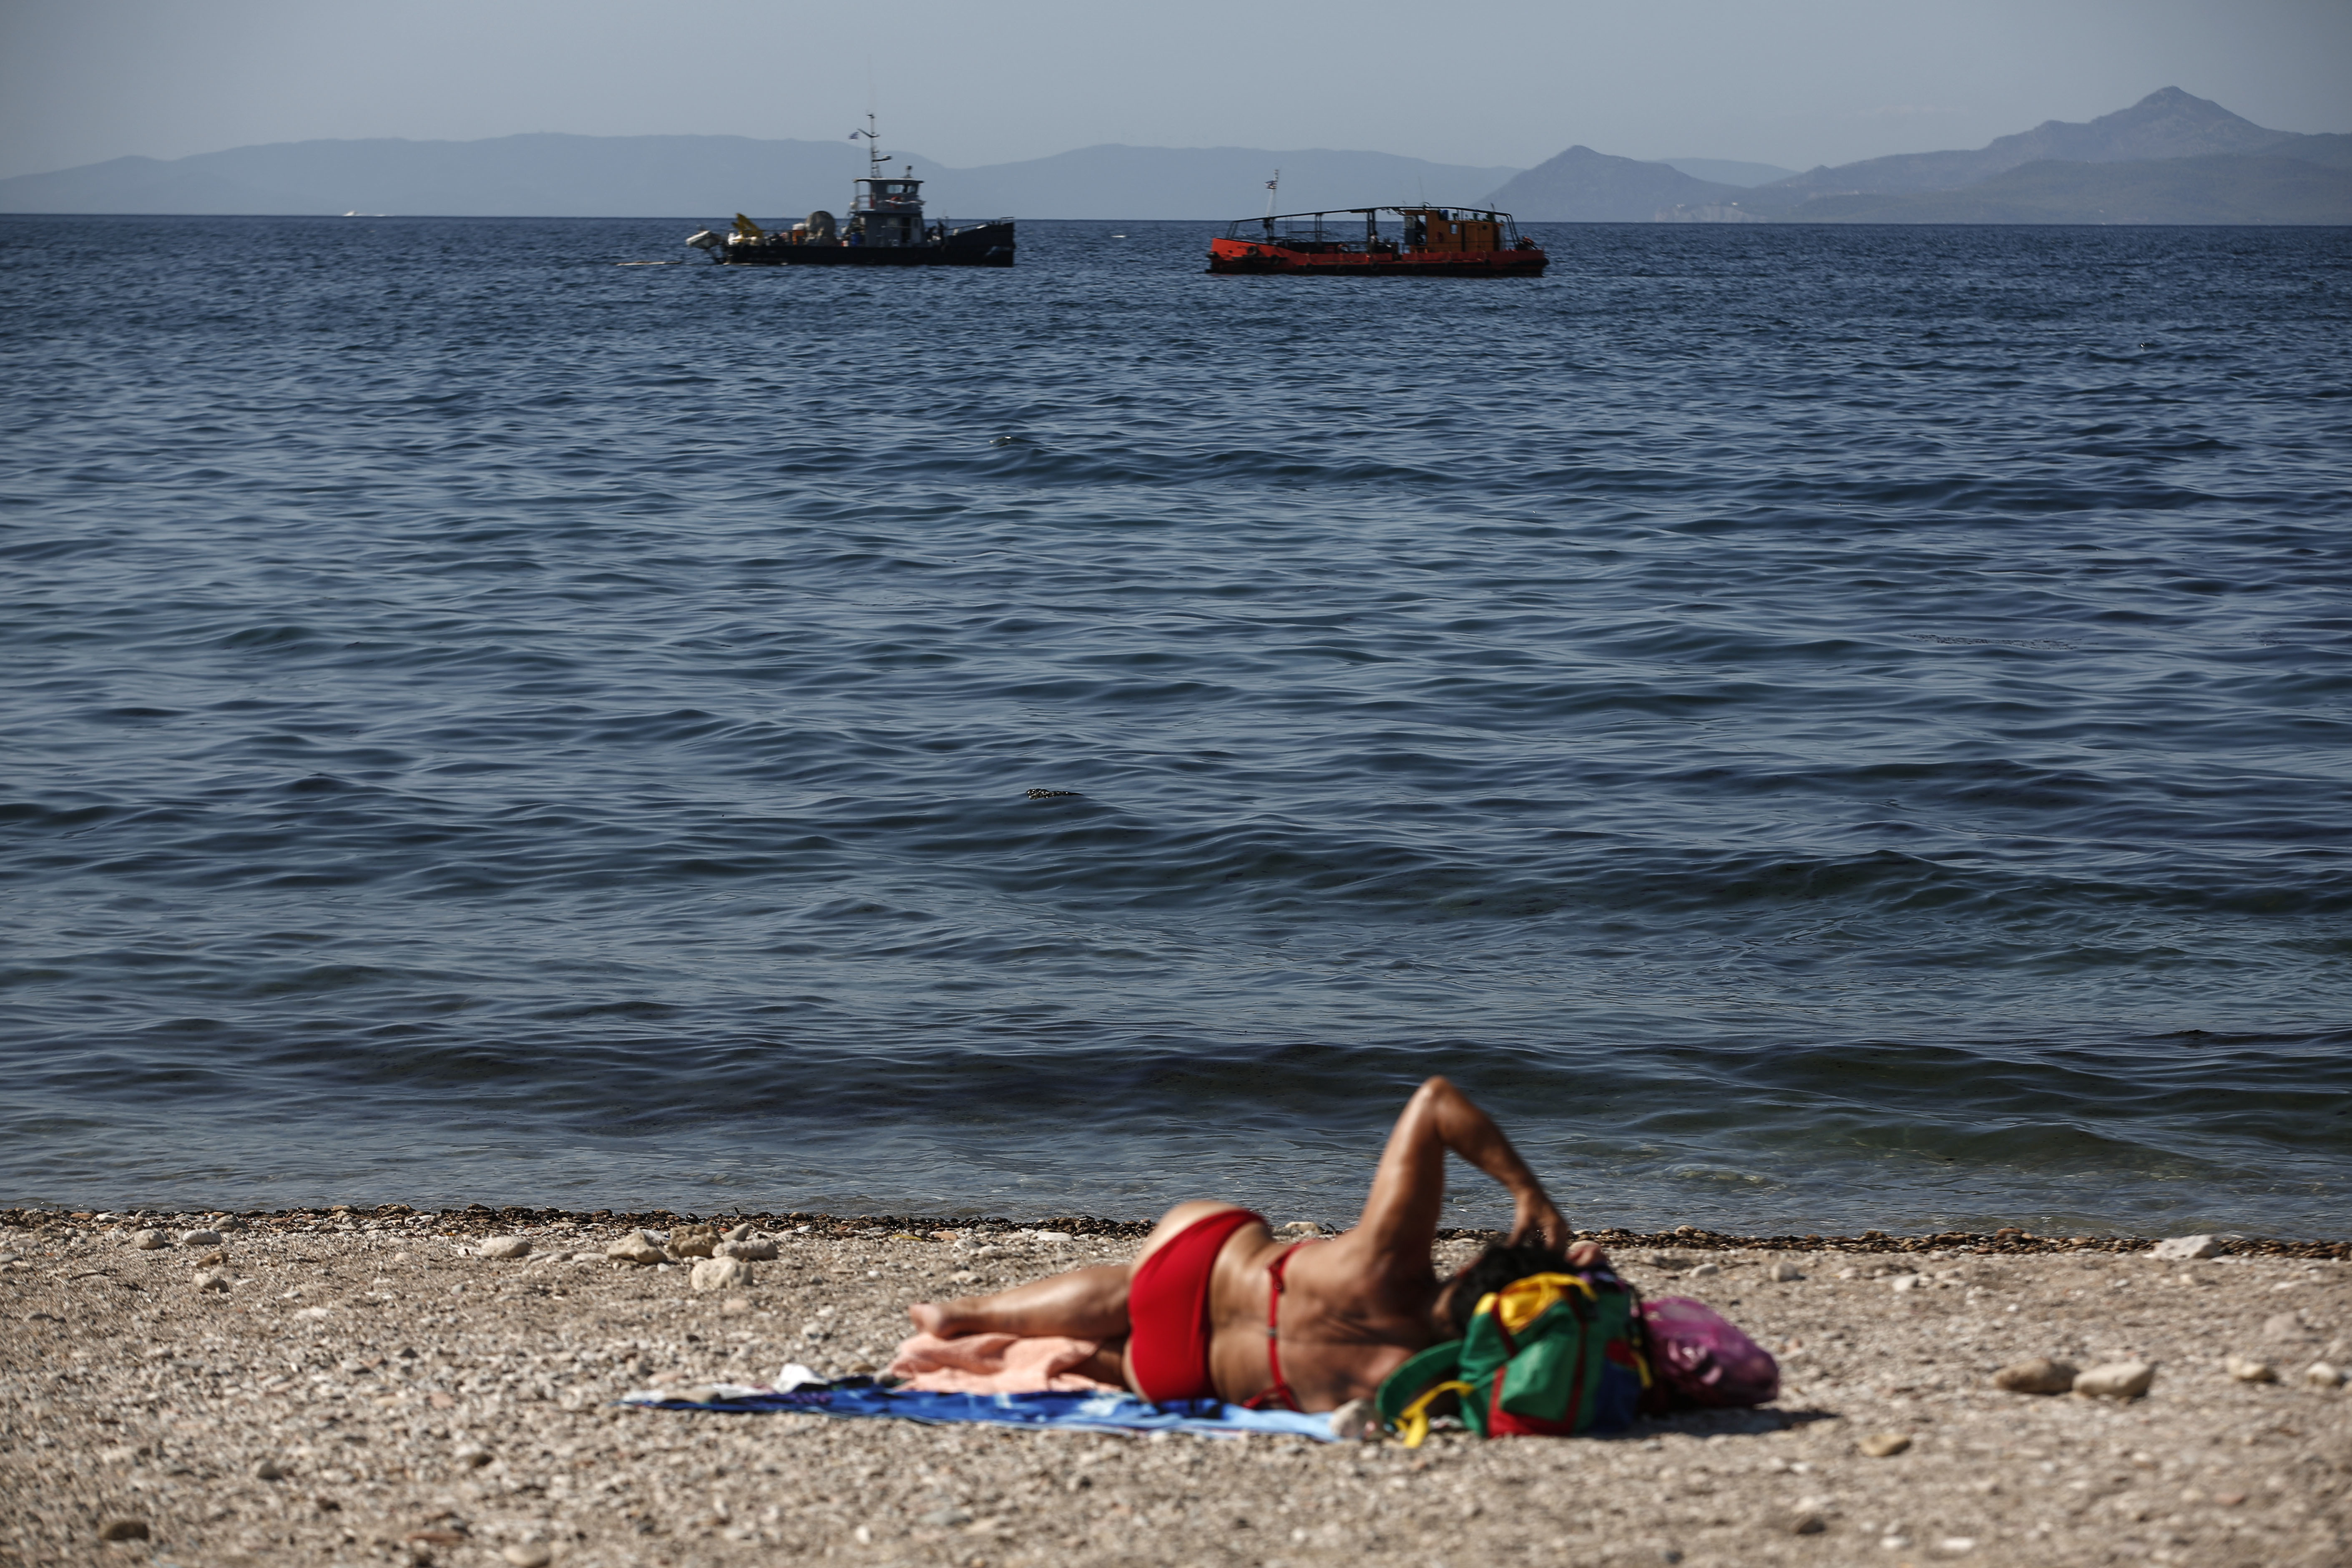 Greece Oli Spill-9 A woman sunbathes as anti-pollution vessels clean the sea from an oil spillage at Faliro suburb, near Athens, on Thursday, Sept. 14, 2017. Greek authorities insist they are doing everything they can to clean up pollution caused by an oil spill following the sinking of a small oil tanker that has left large sections of the Greek capital's coastal areas coated in viscous, foul-smelling oil. (AP Photo/Yorgos Karahalis)